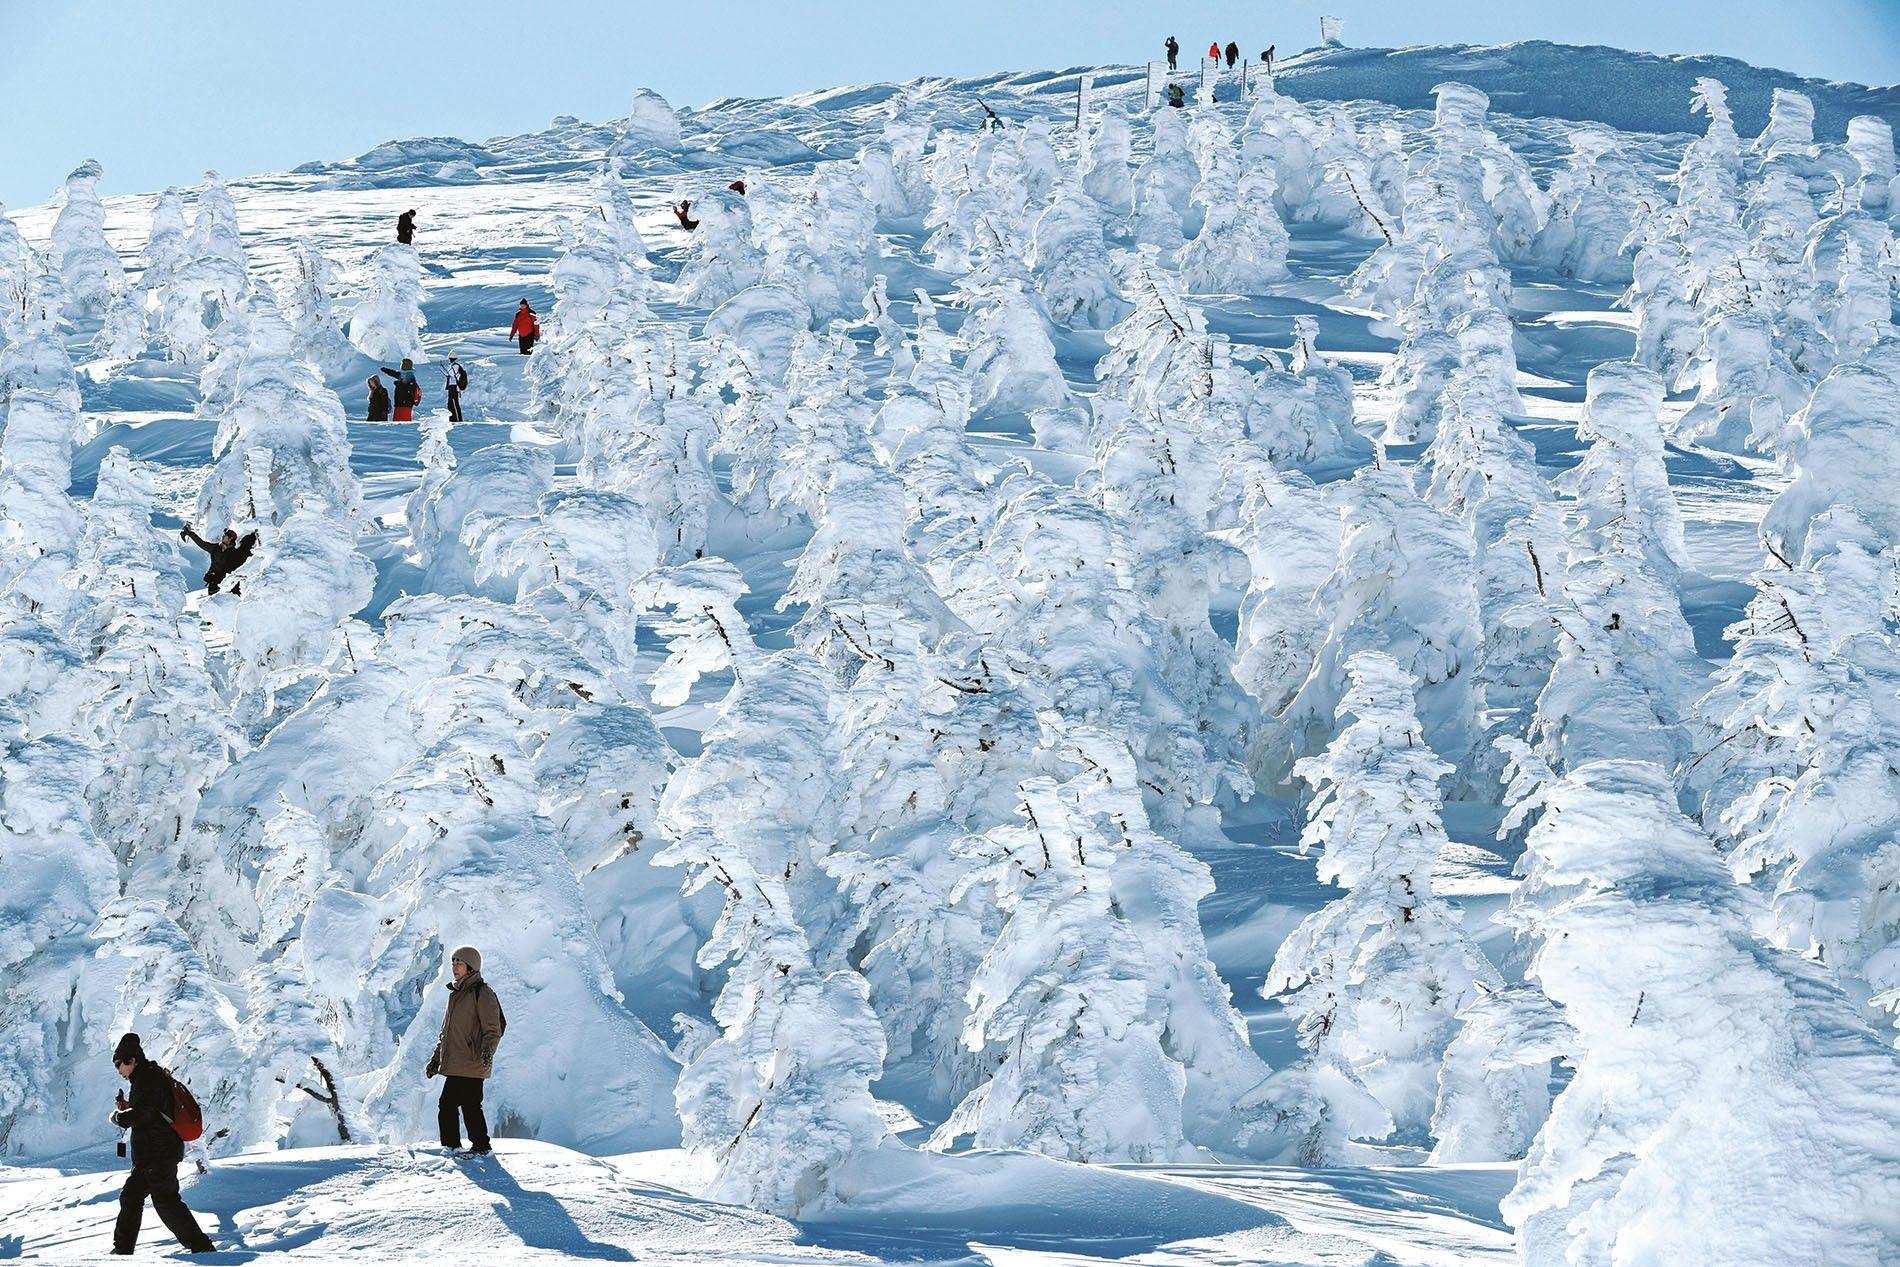 Ice-covered trees, known as snow monsters, transform southern Tokohu's Zao ski resort into a winter wonderland.